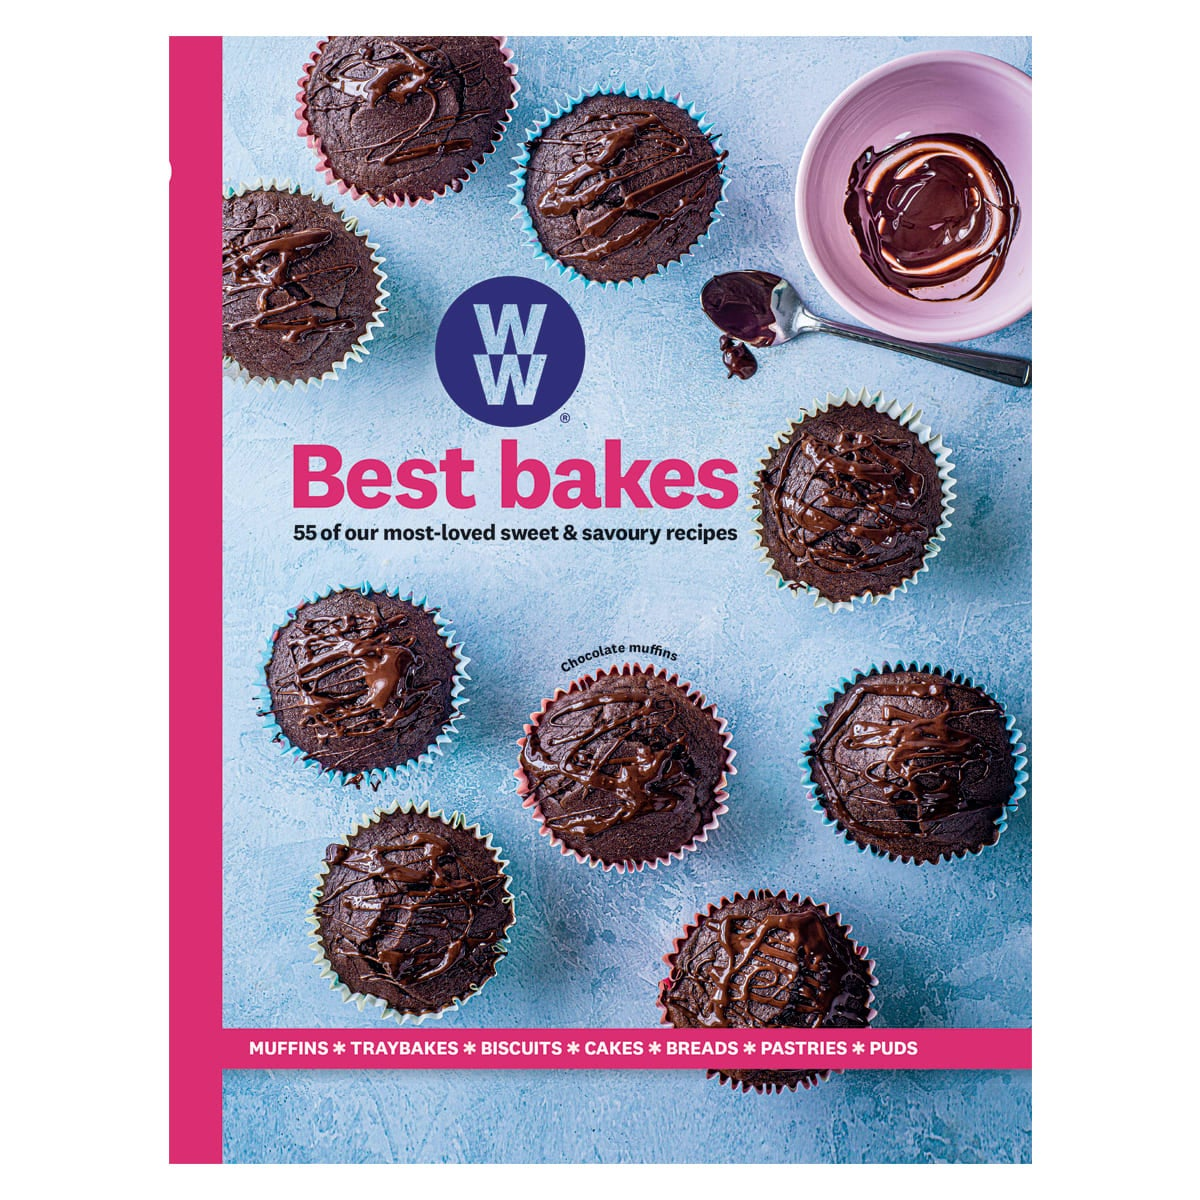 WW Best Bakes Cookbook, 5 sweet & savoury recipes, muffins, traybakes, biscuits, cakes, breads, pastries, puds